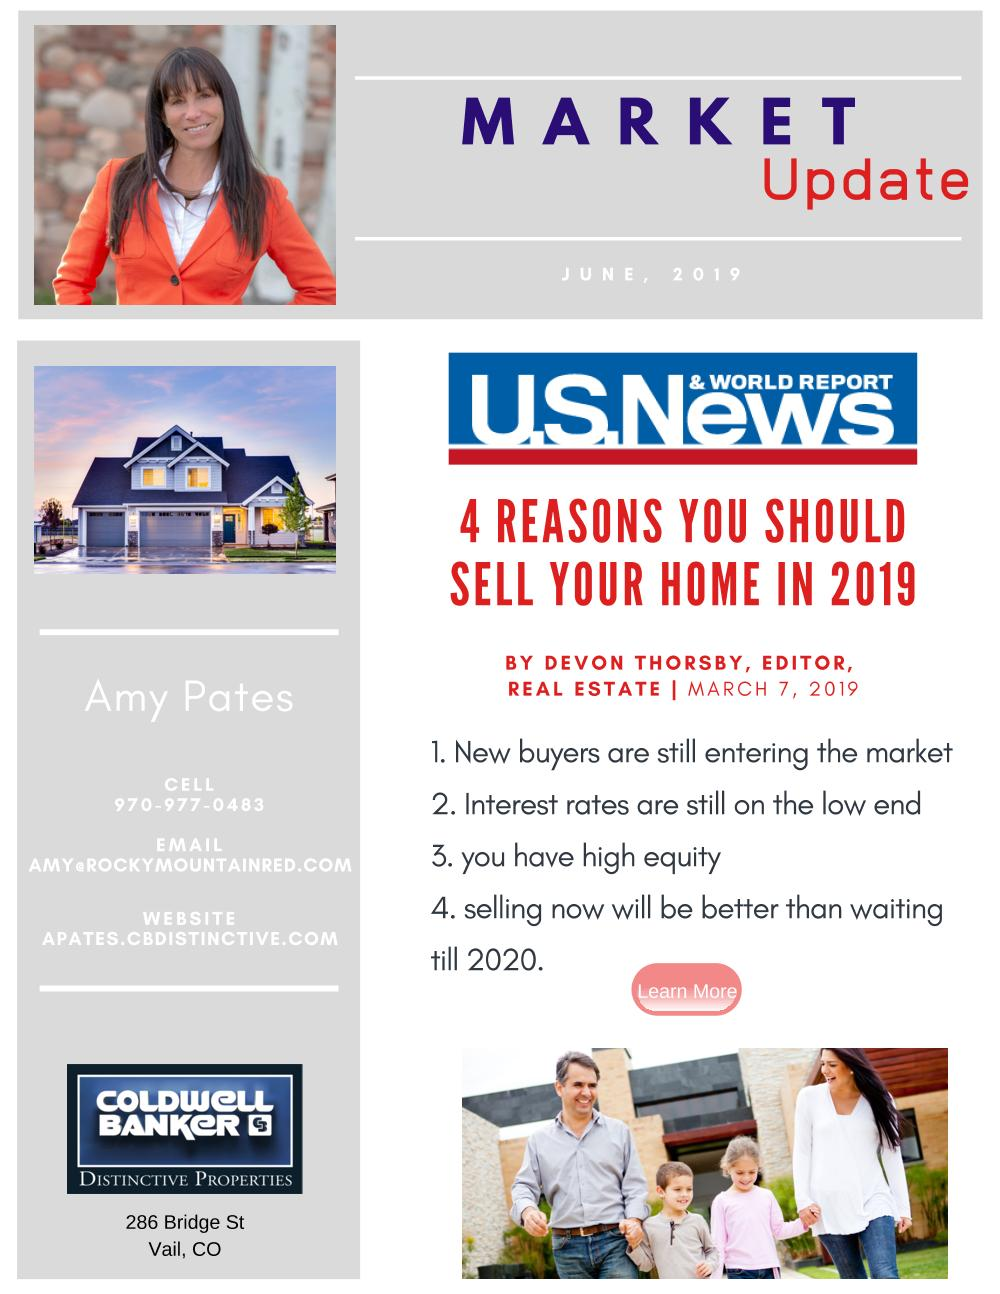 Market Update June 2019